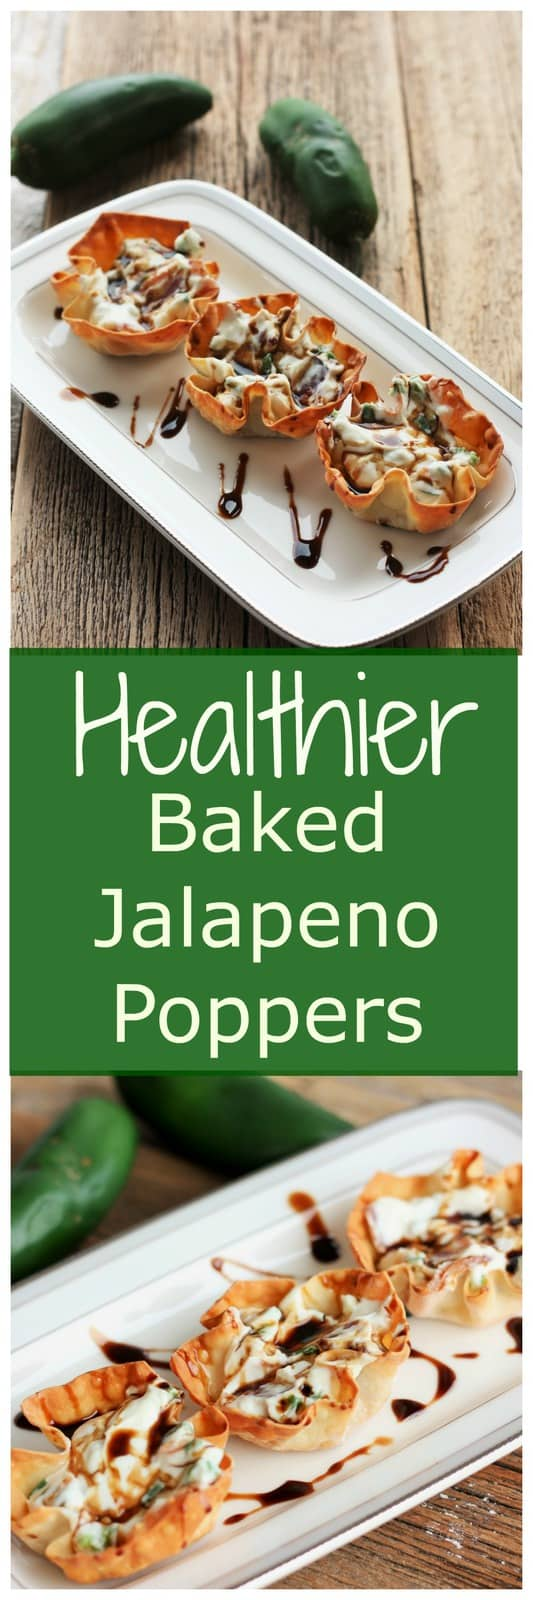 Healthier Baked Jalapeno Poppers are the perfect appetizer, game day treat, or quick snack. They are a delicious blend of spicy and creamy.